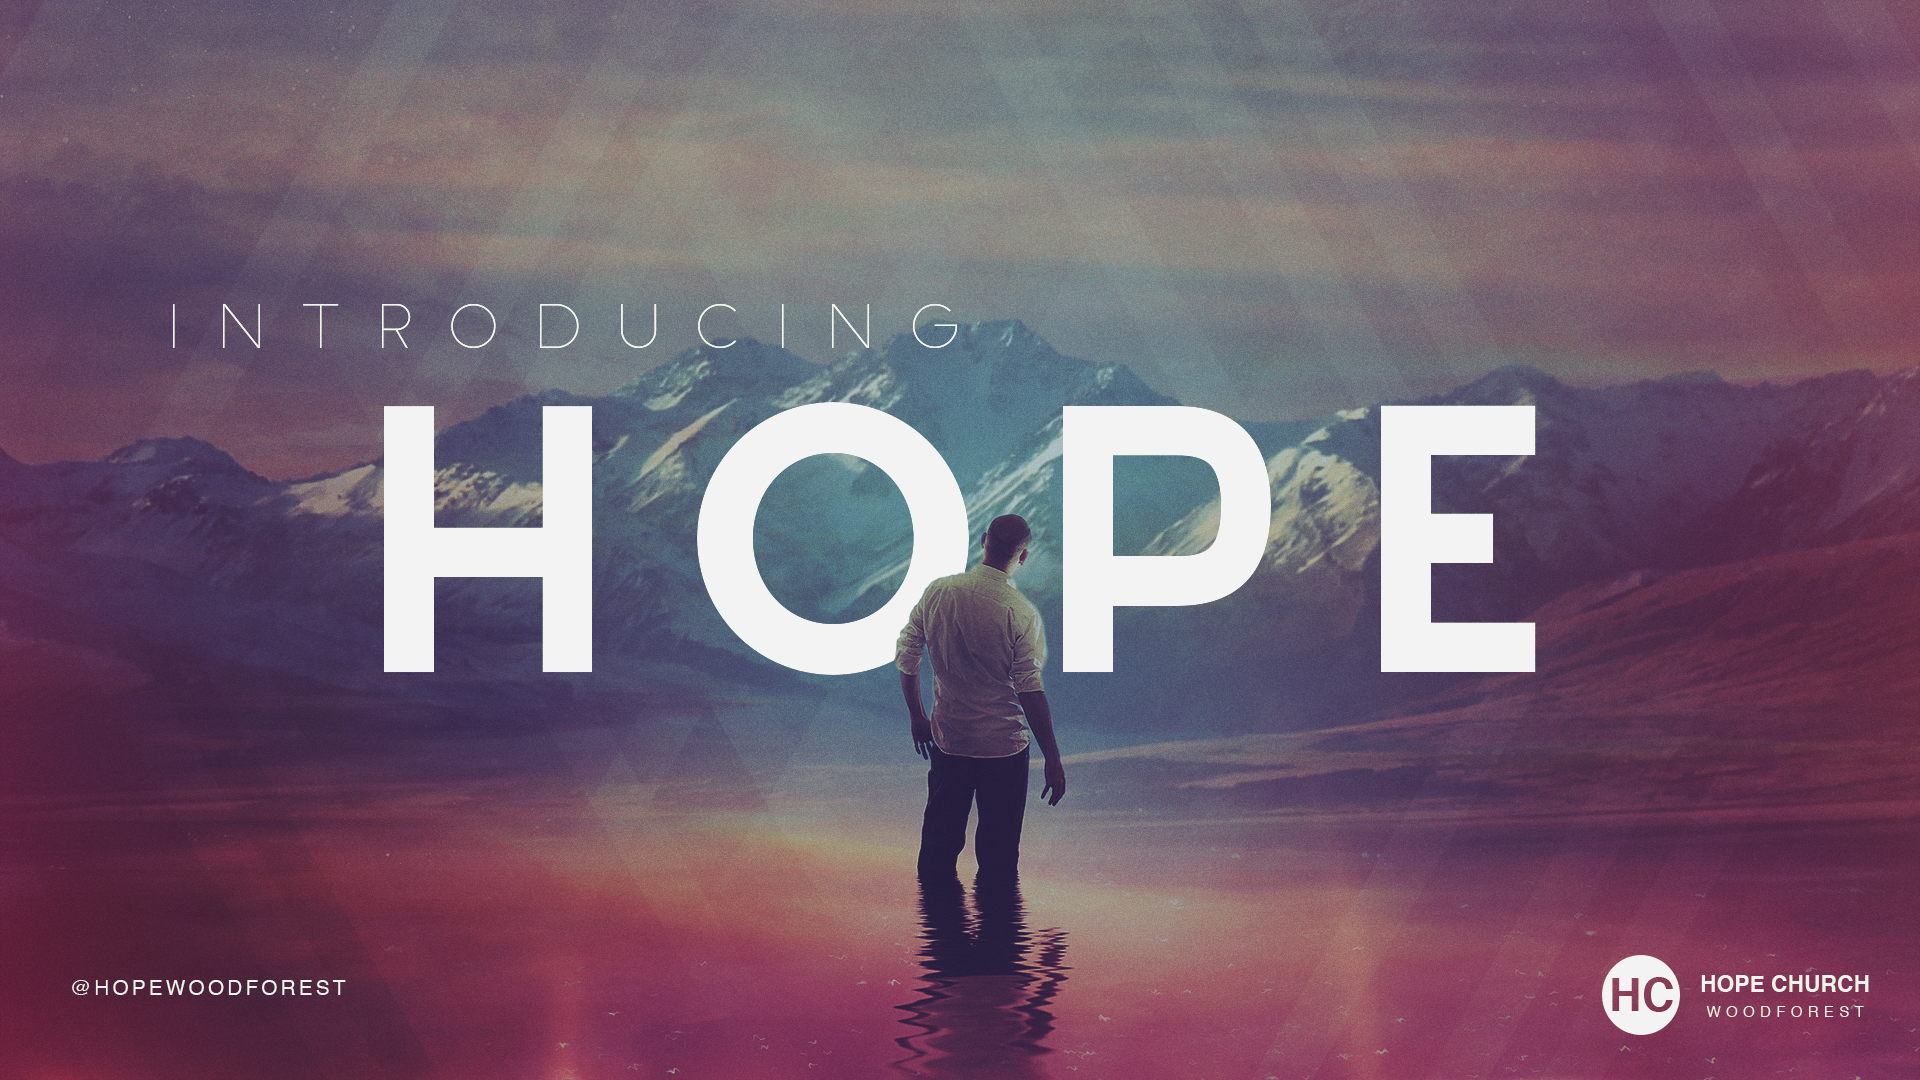 Introducing Hope